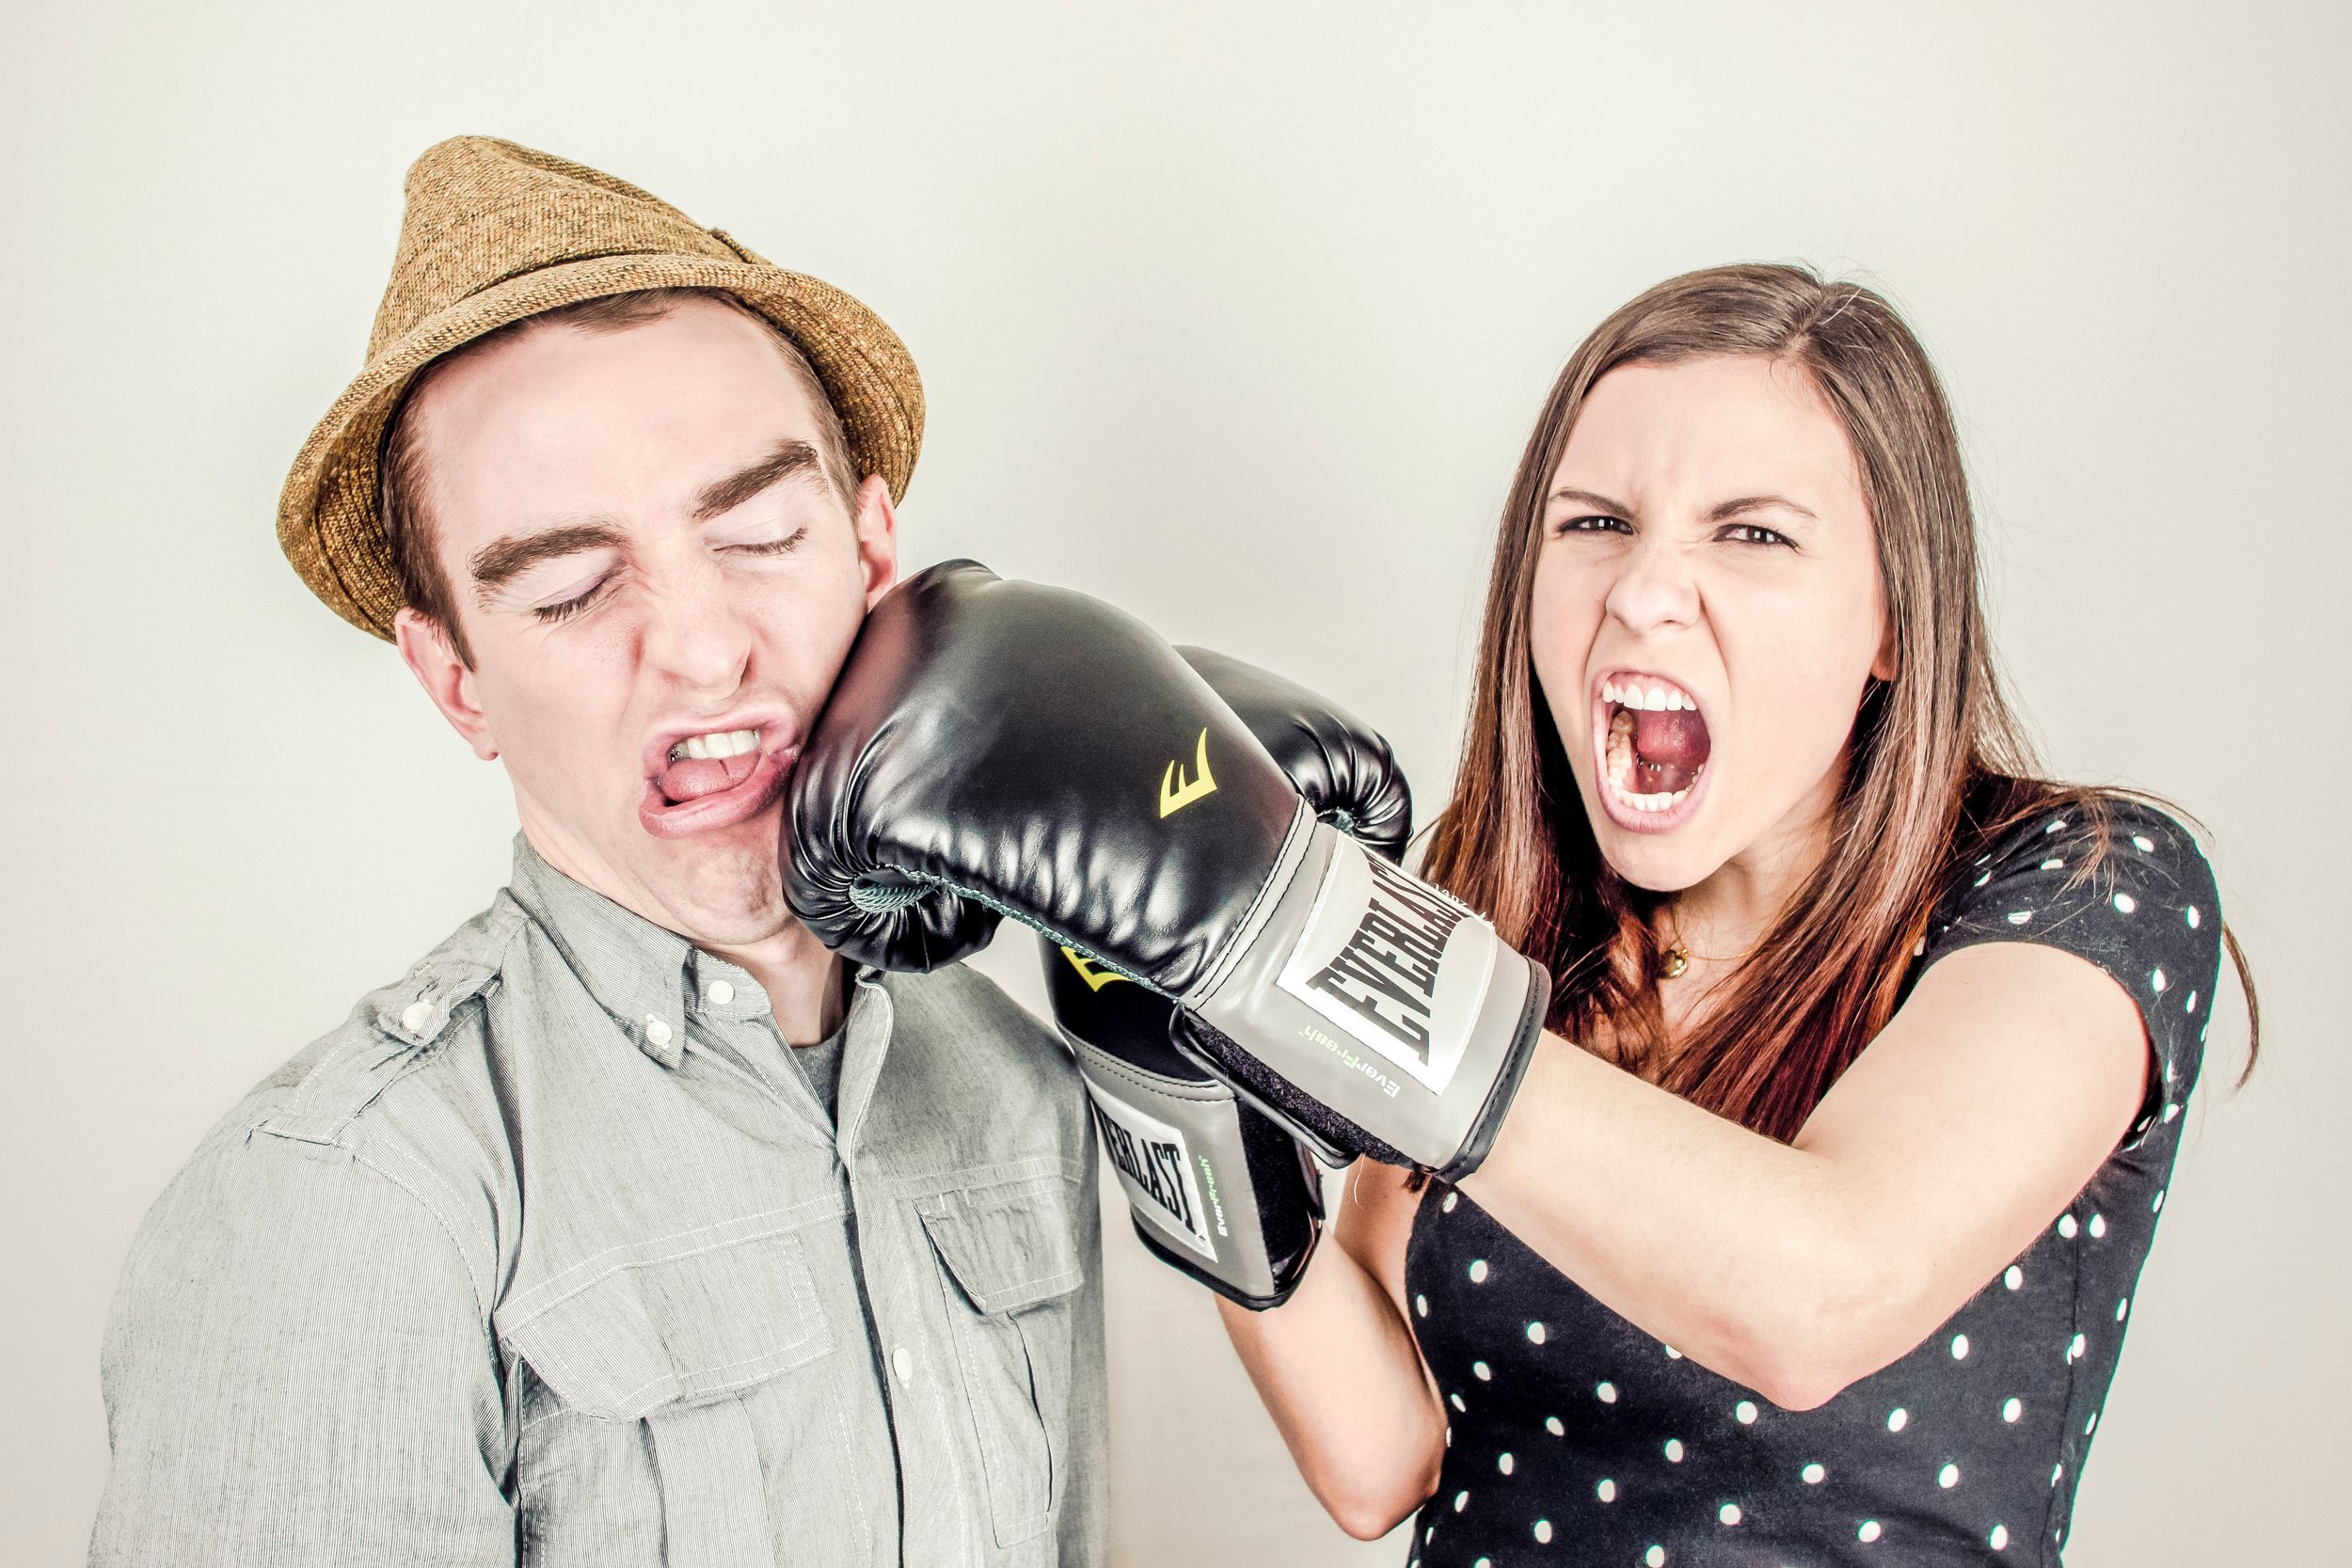 what do couples fight about most?